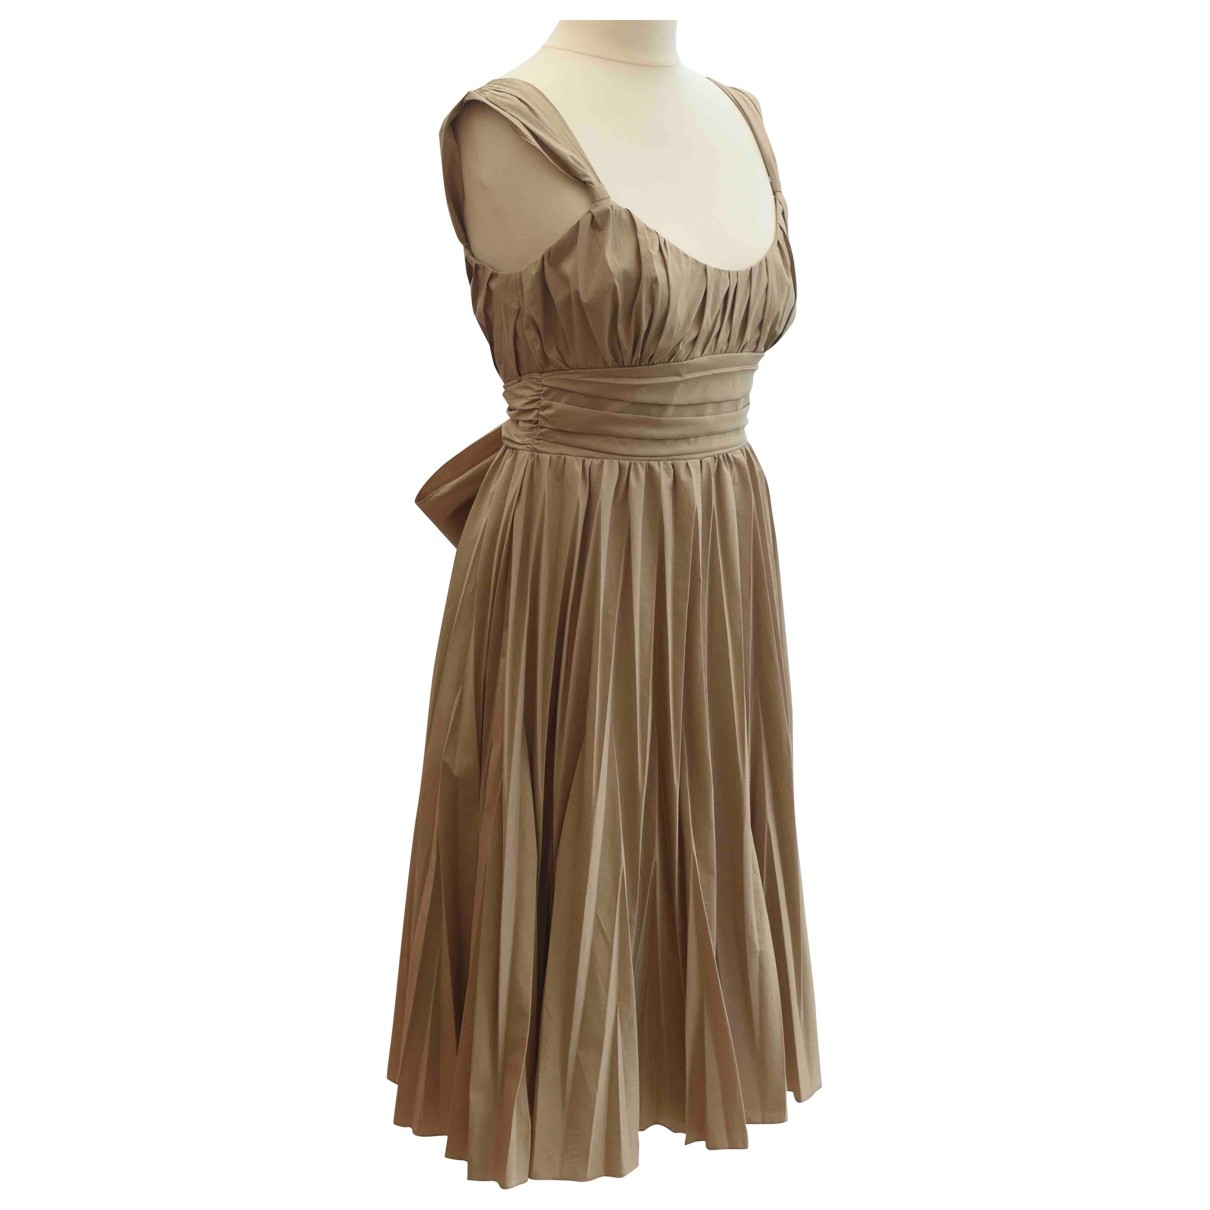 Moschino Cheap And Chic \N dress for Women 40 IT